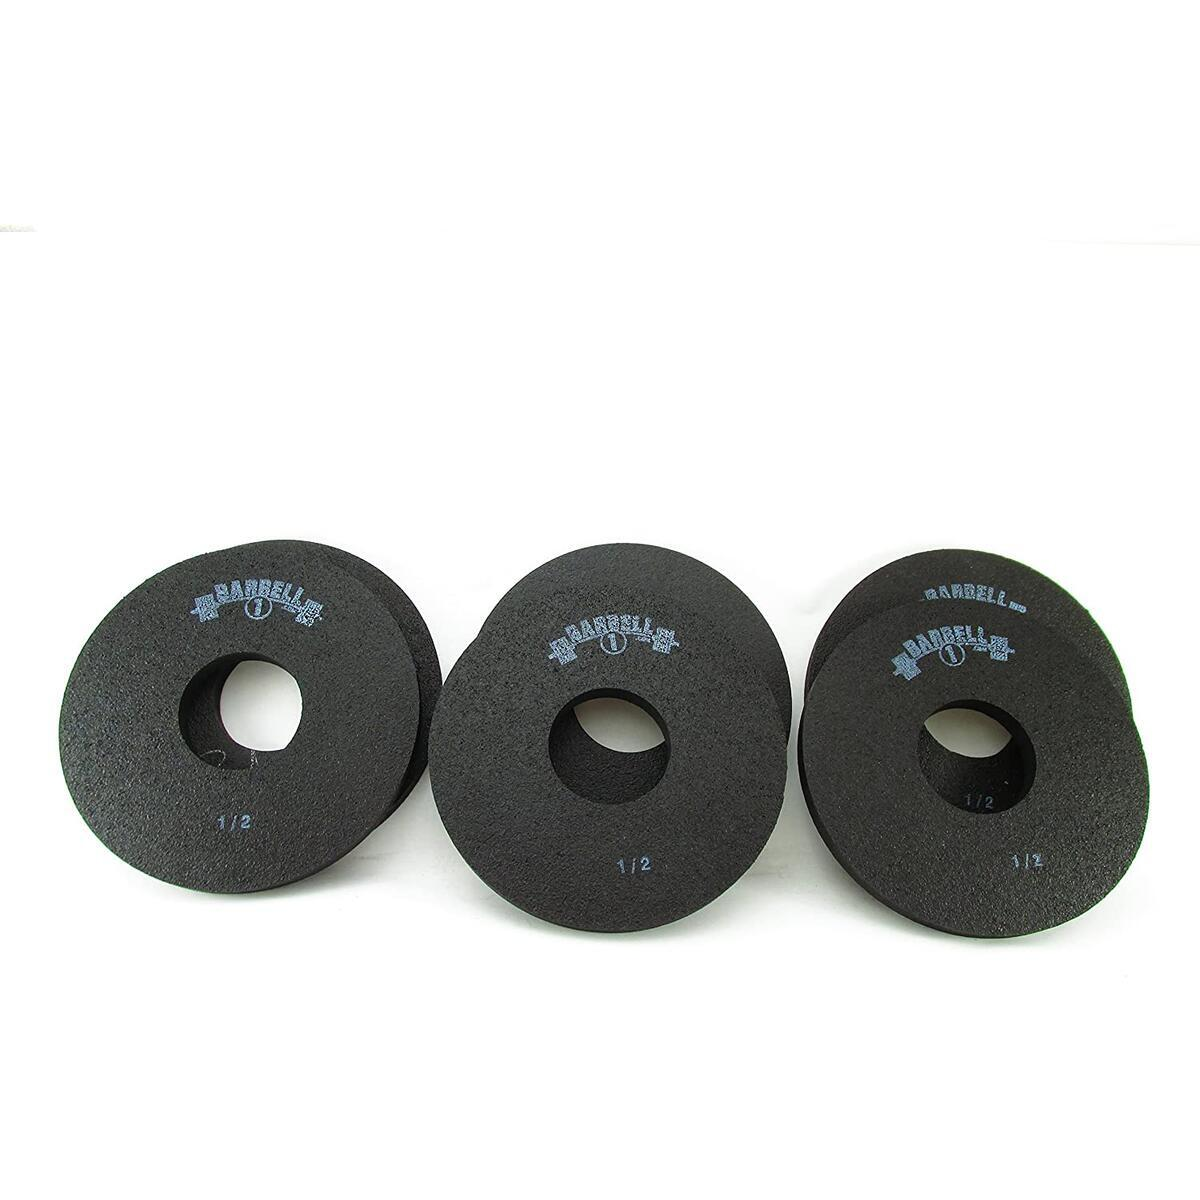 Barbell 1 Half Pound Fractional Rubber Olympic Weight Plates - 2, 4, 6, or 8 Pc Set (2 Plates, 1/2 lb.)